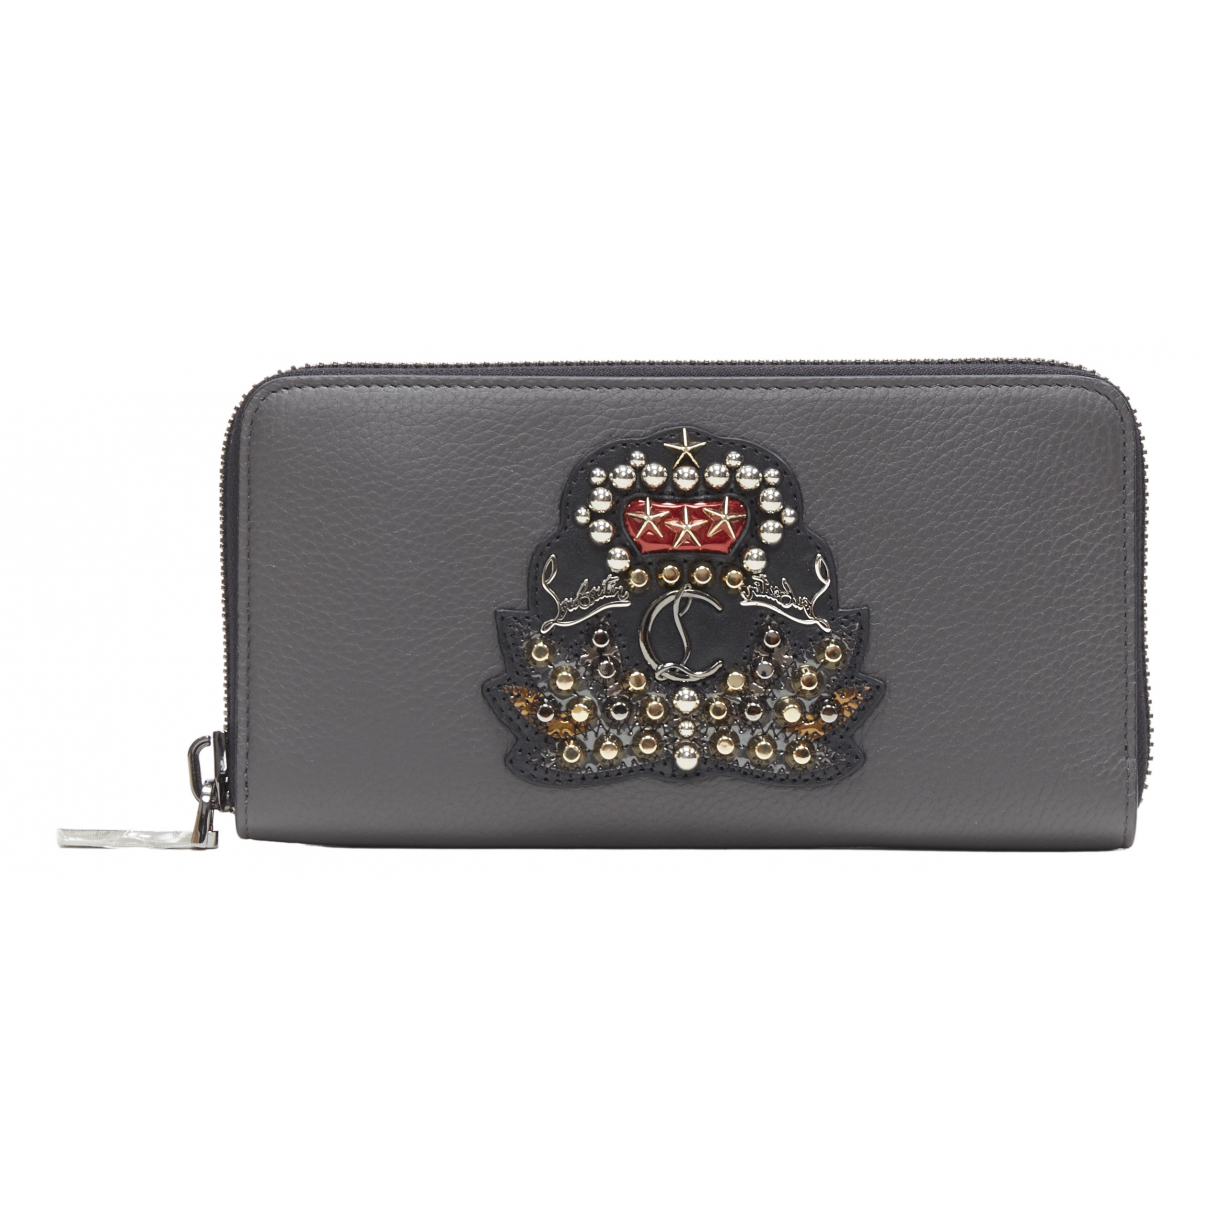 Christian Louboutin N Grey Leather Small bag, wallet & cases for Men N